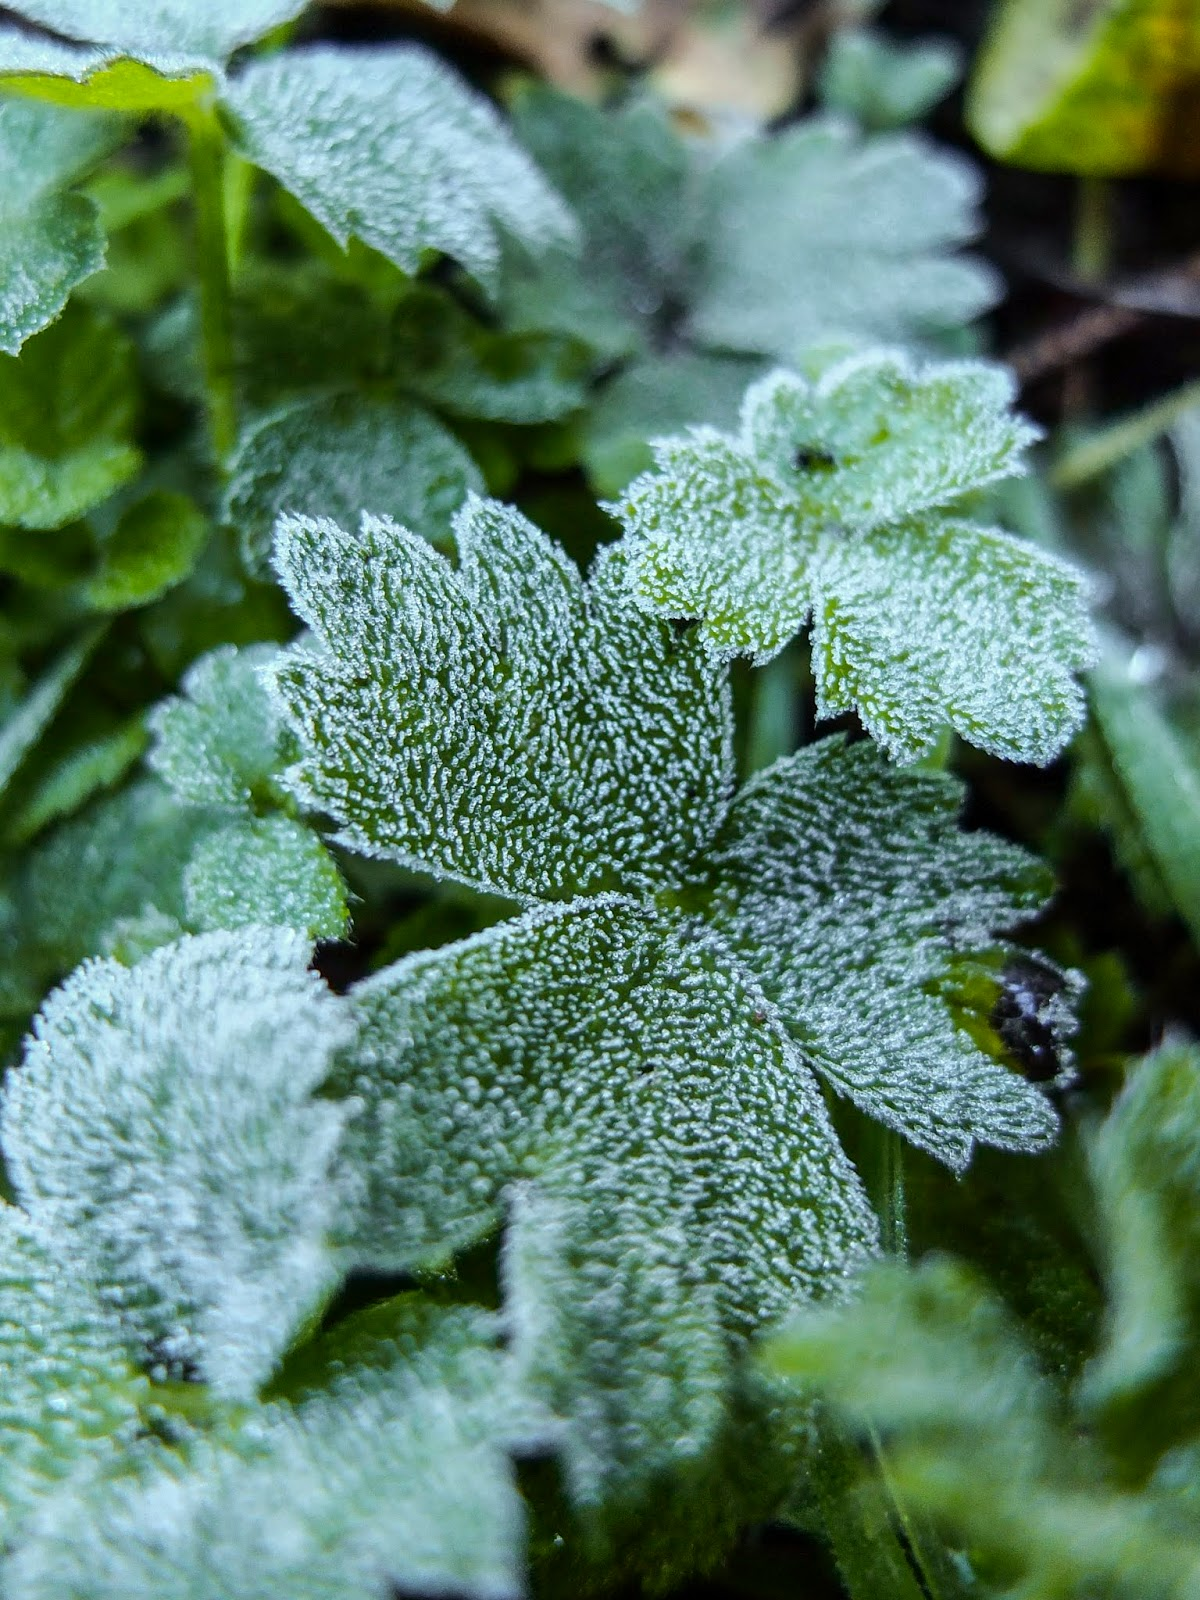 Close up of green frosty leaves.